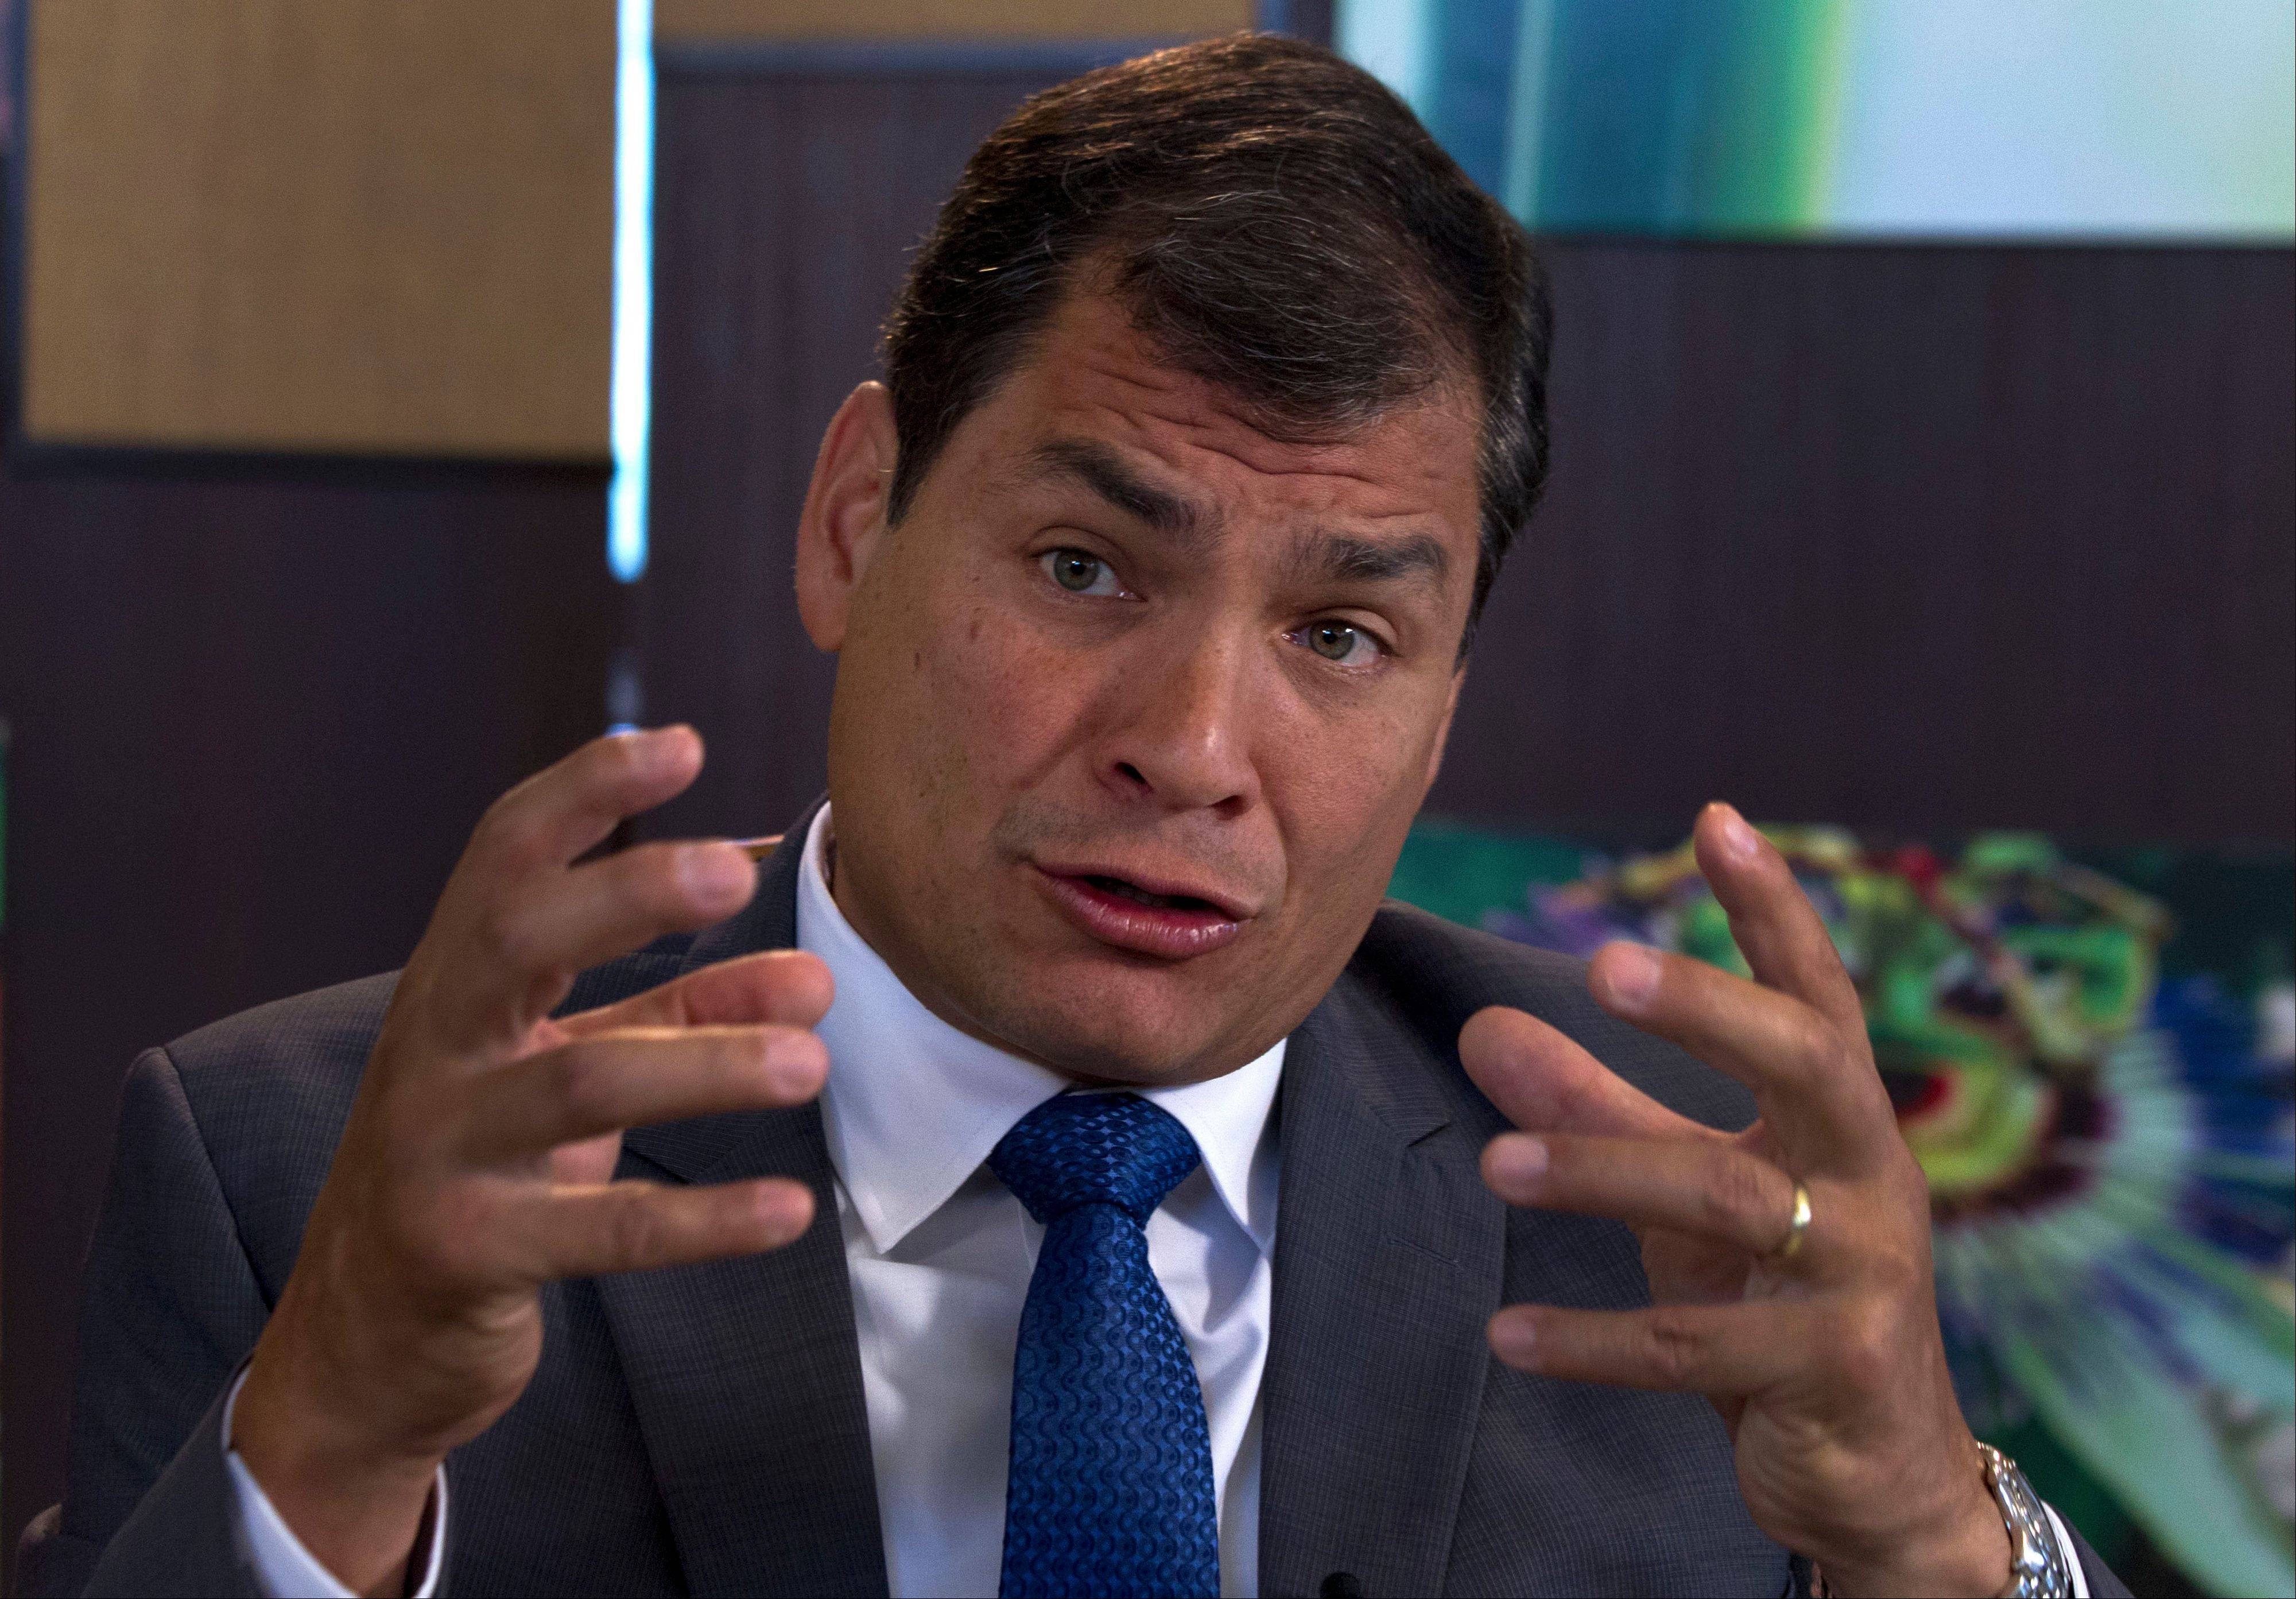 Ecuadorean President Rafael Correa says he had no idea National Security Agency leaker Edward Snowden's intended destination was Ecuador when he fled Hong Kong for Russia last week.